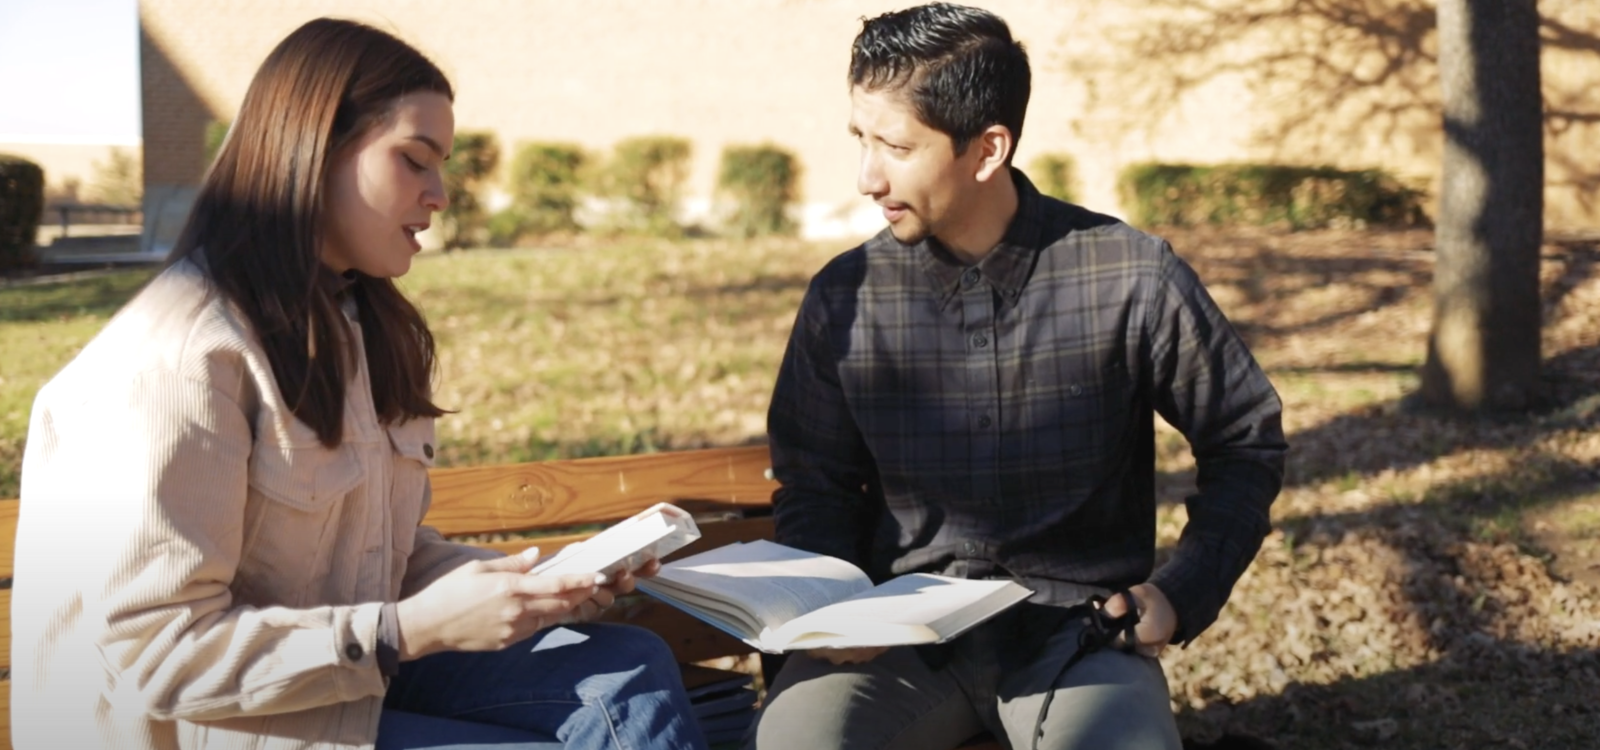 Two students sit on a bench holding books and talking